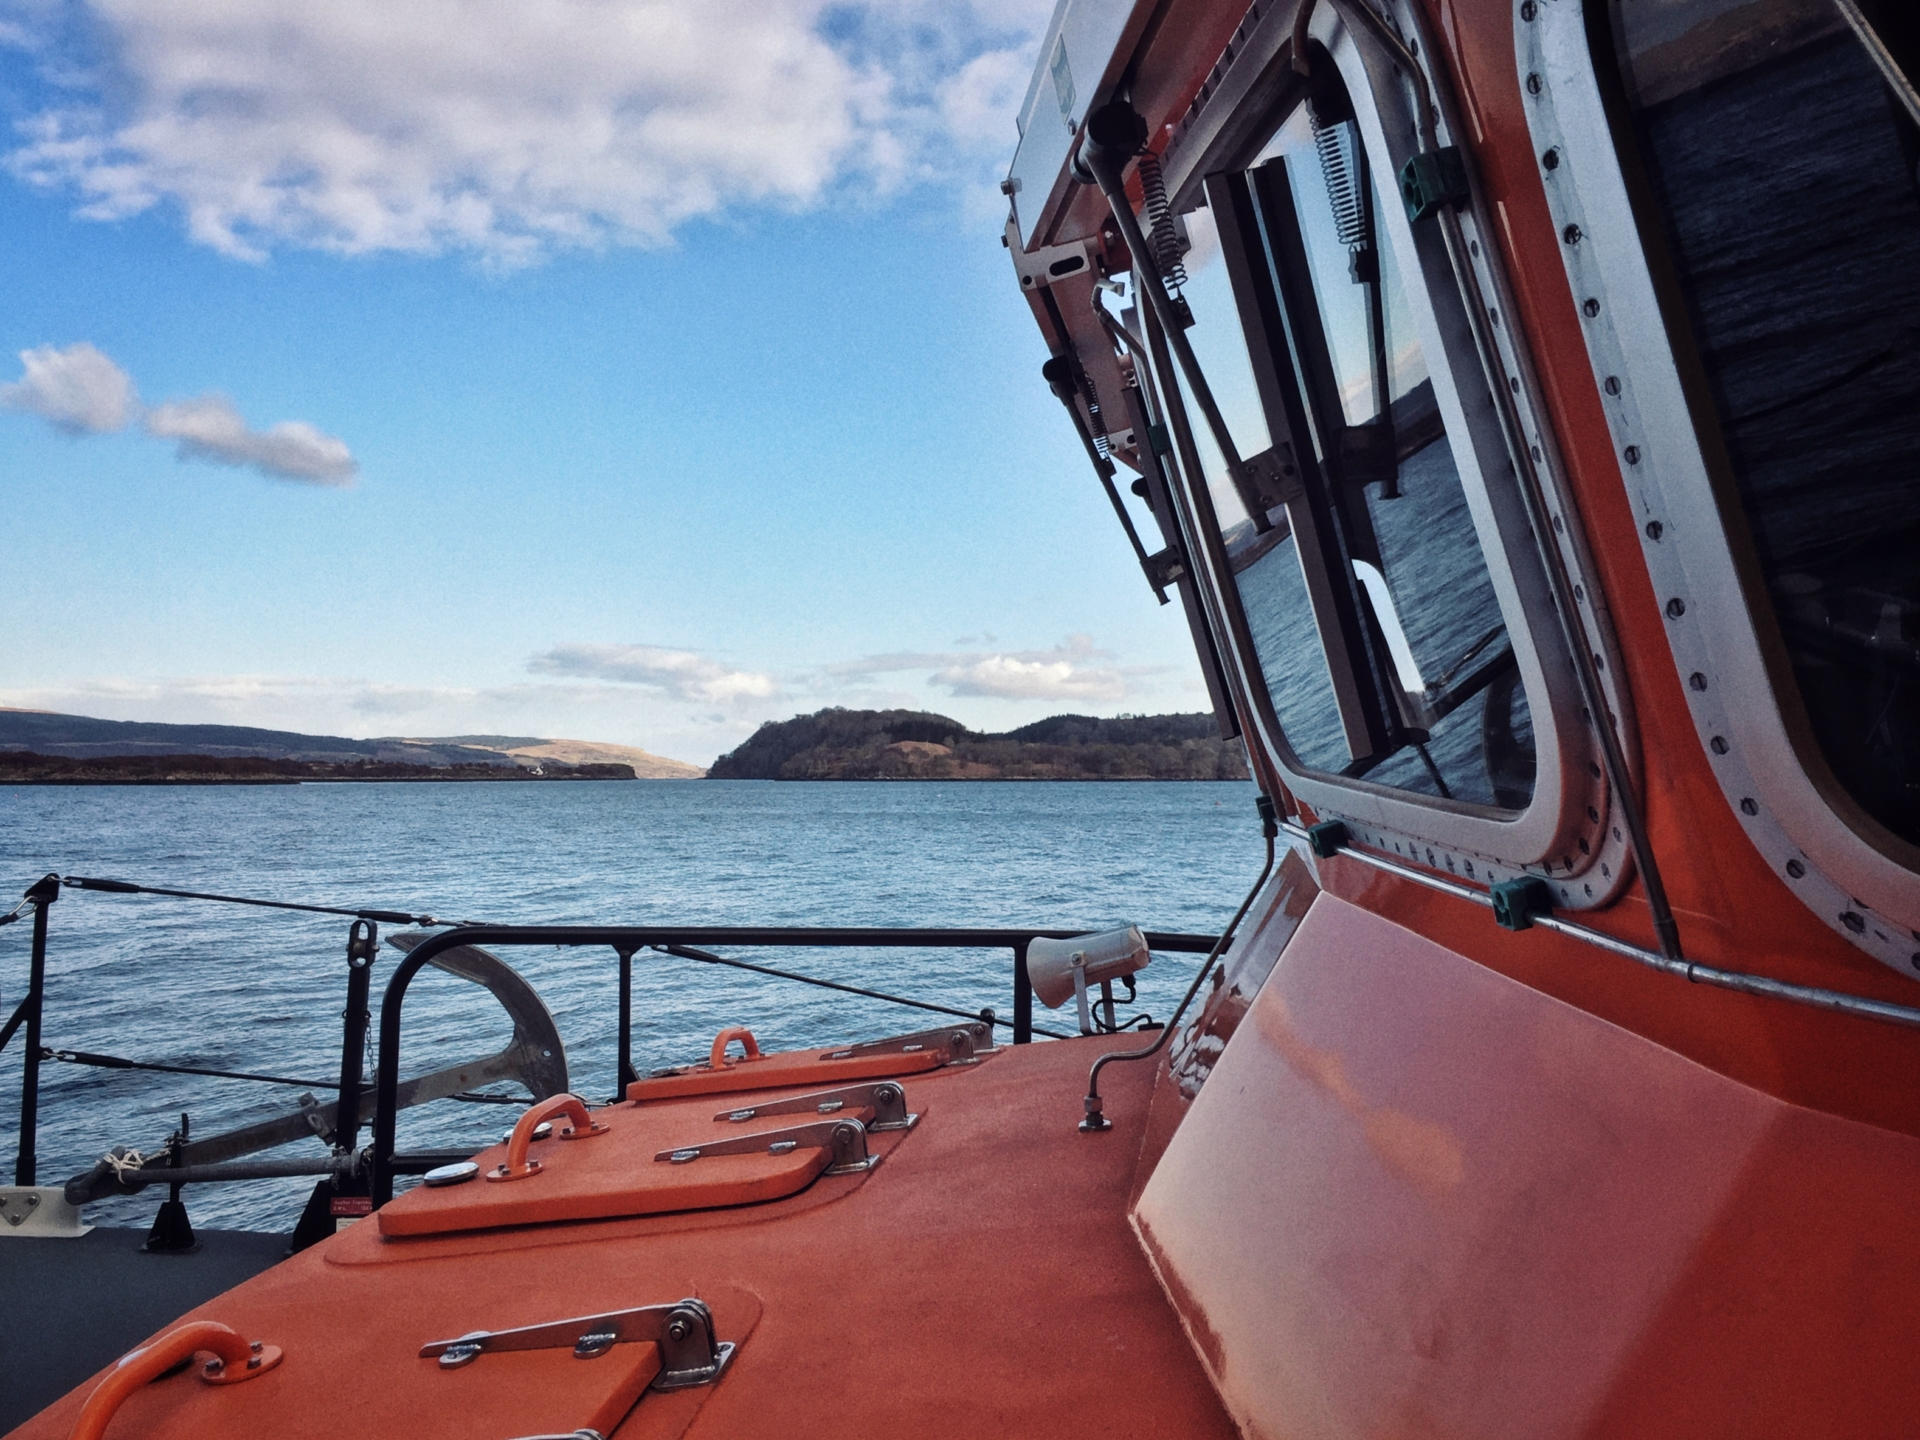 Tobermory RNLI Severn class lifeboat